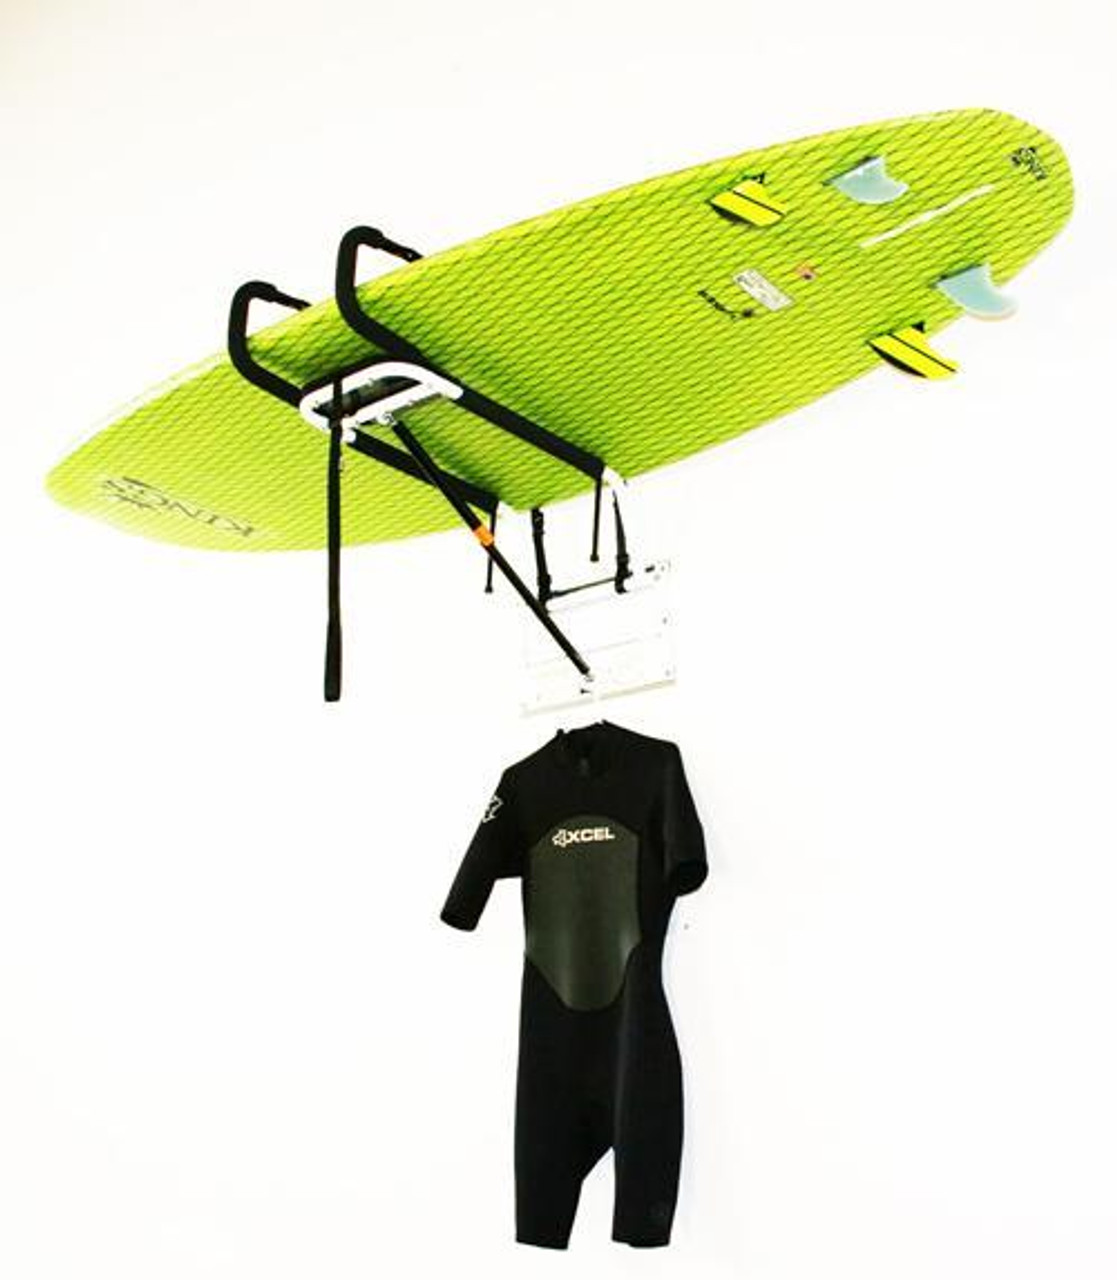 zero gravity hydraulic SUP storage lift